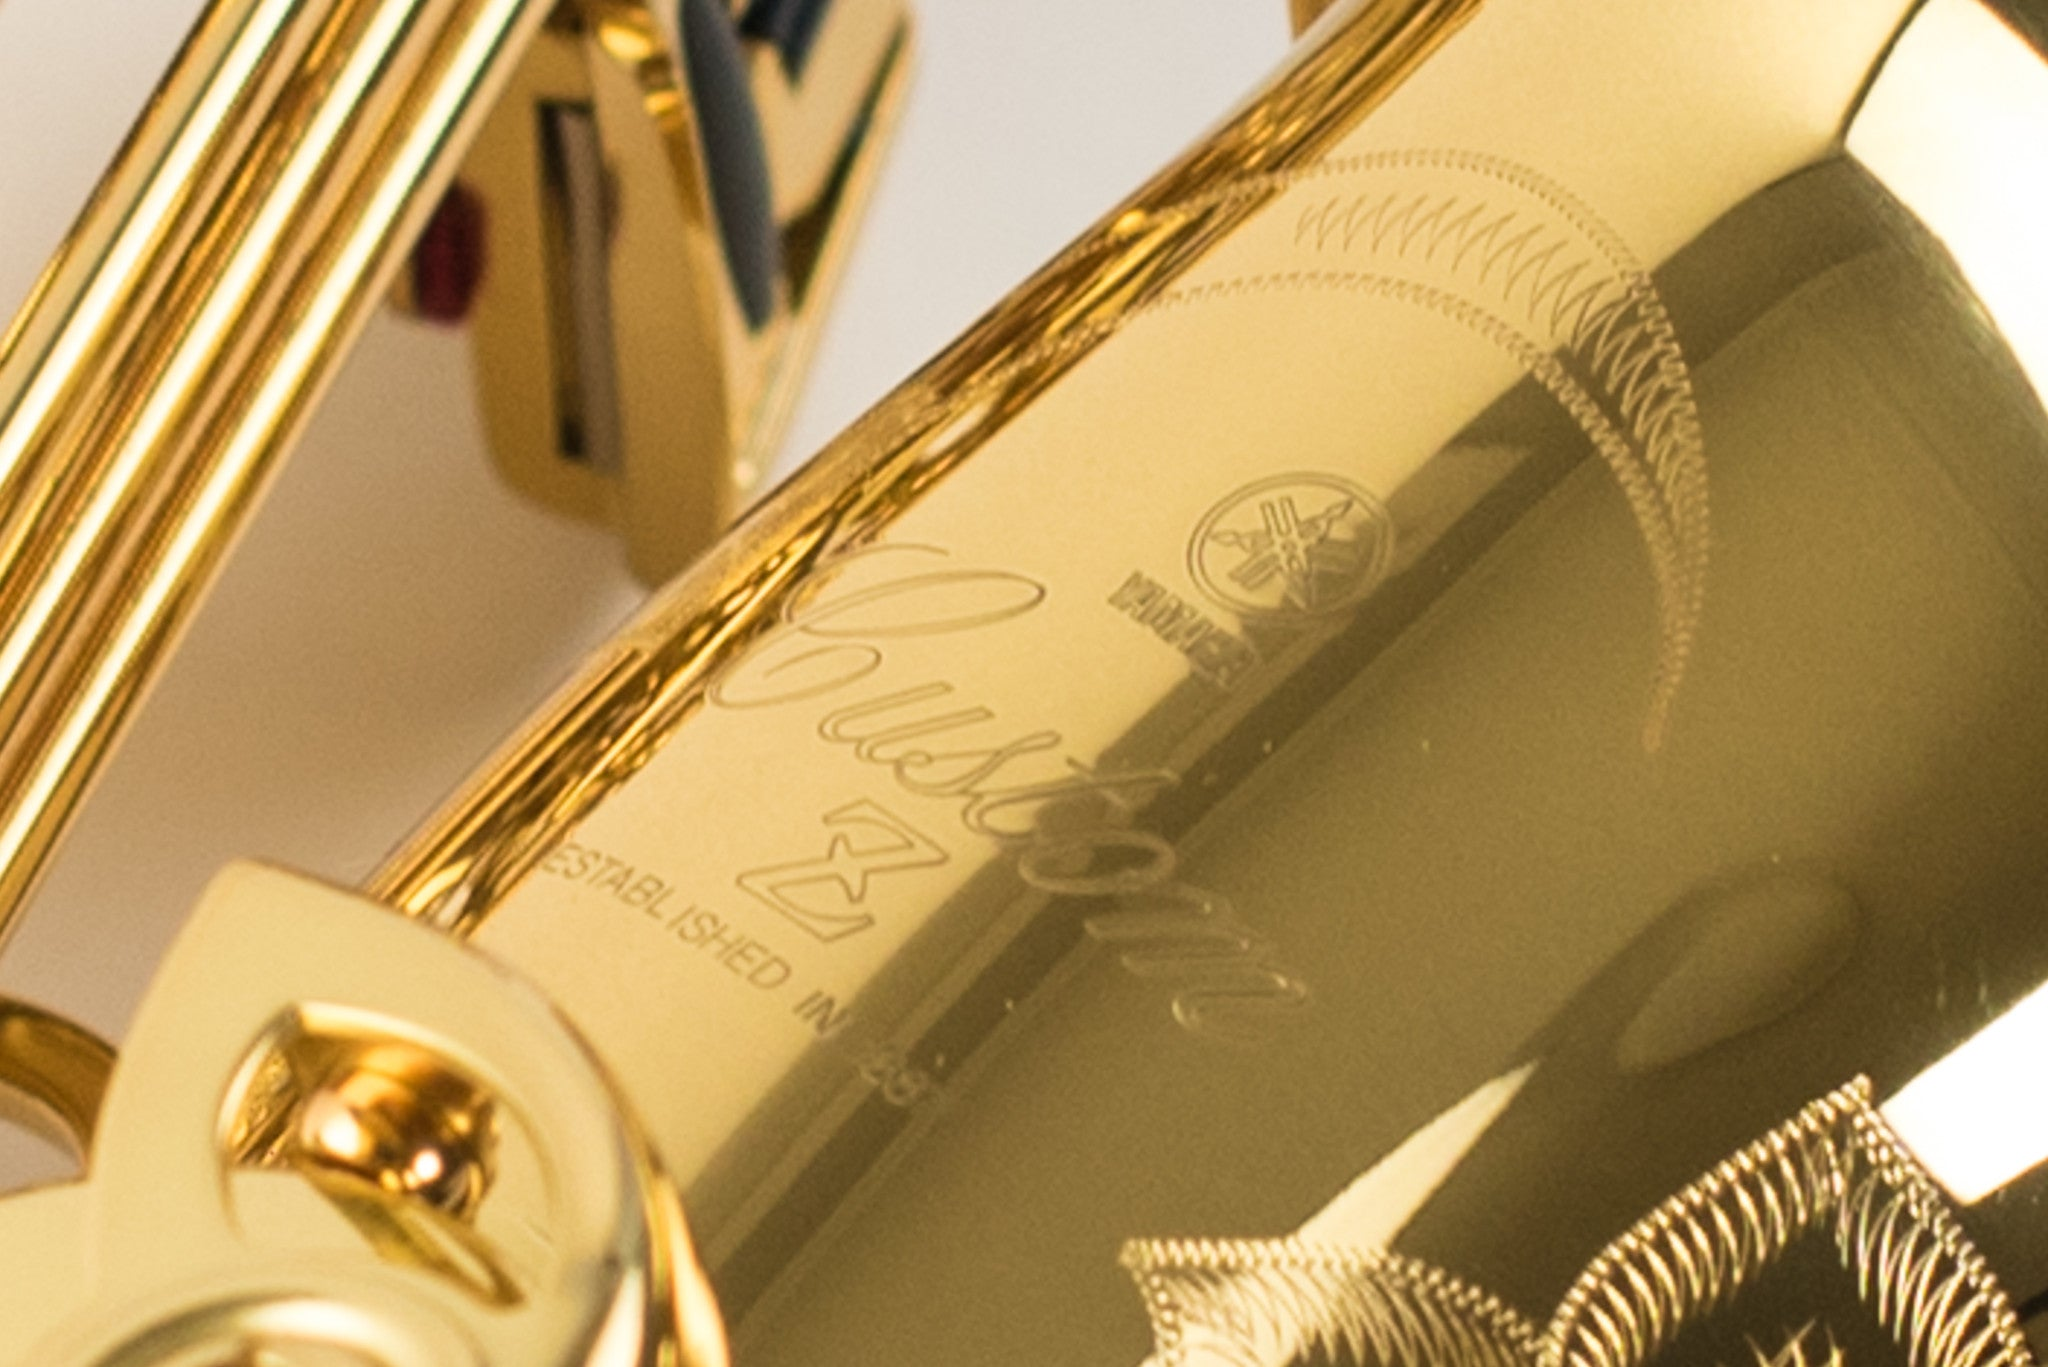 Yamaha Custom 82Zii Alto Saxophone YAS-82Zii, Near Mint Condition, 2016 Model